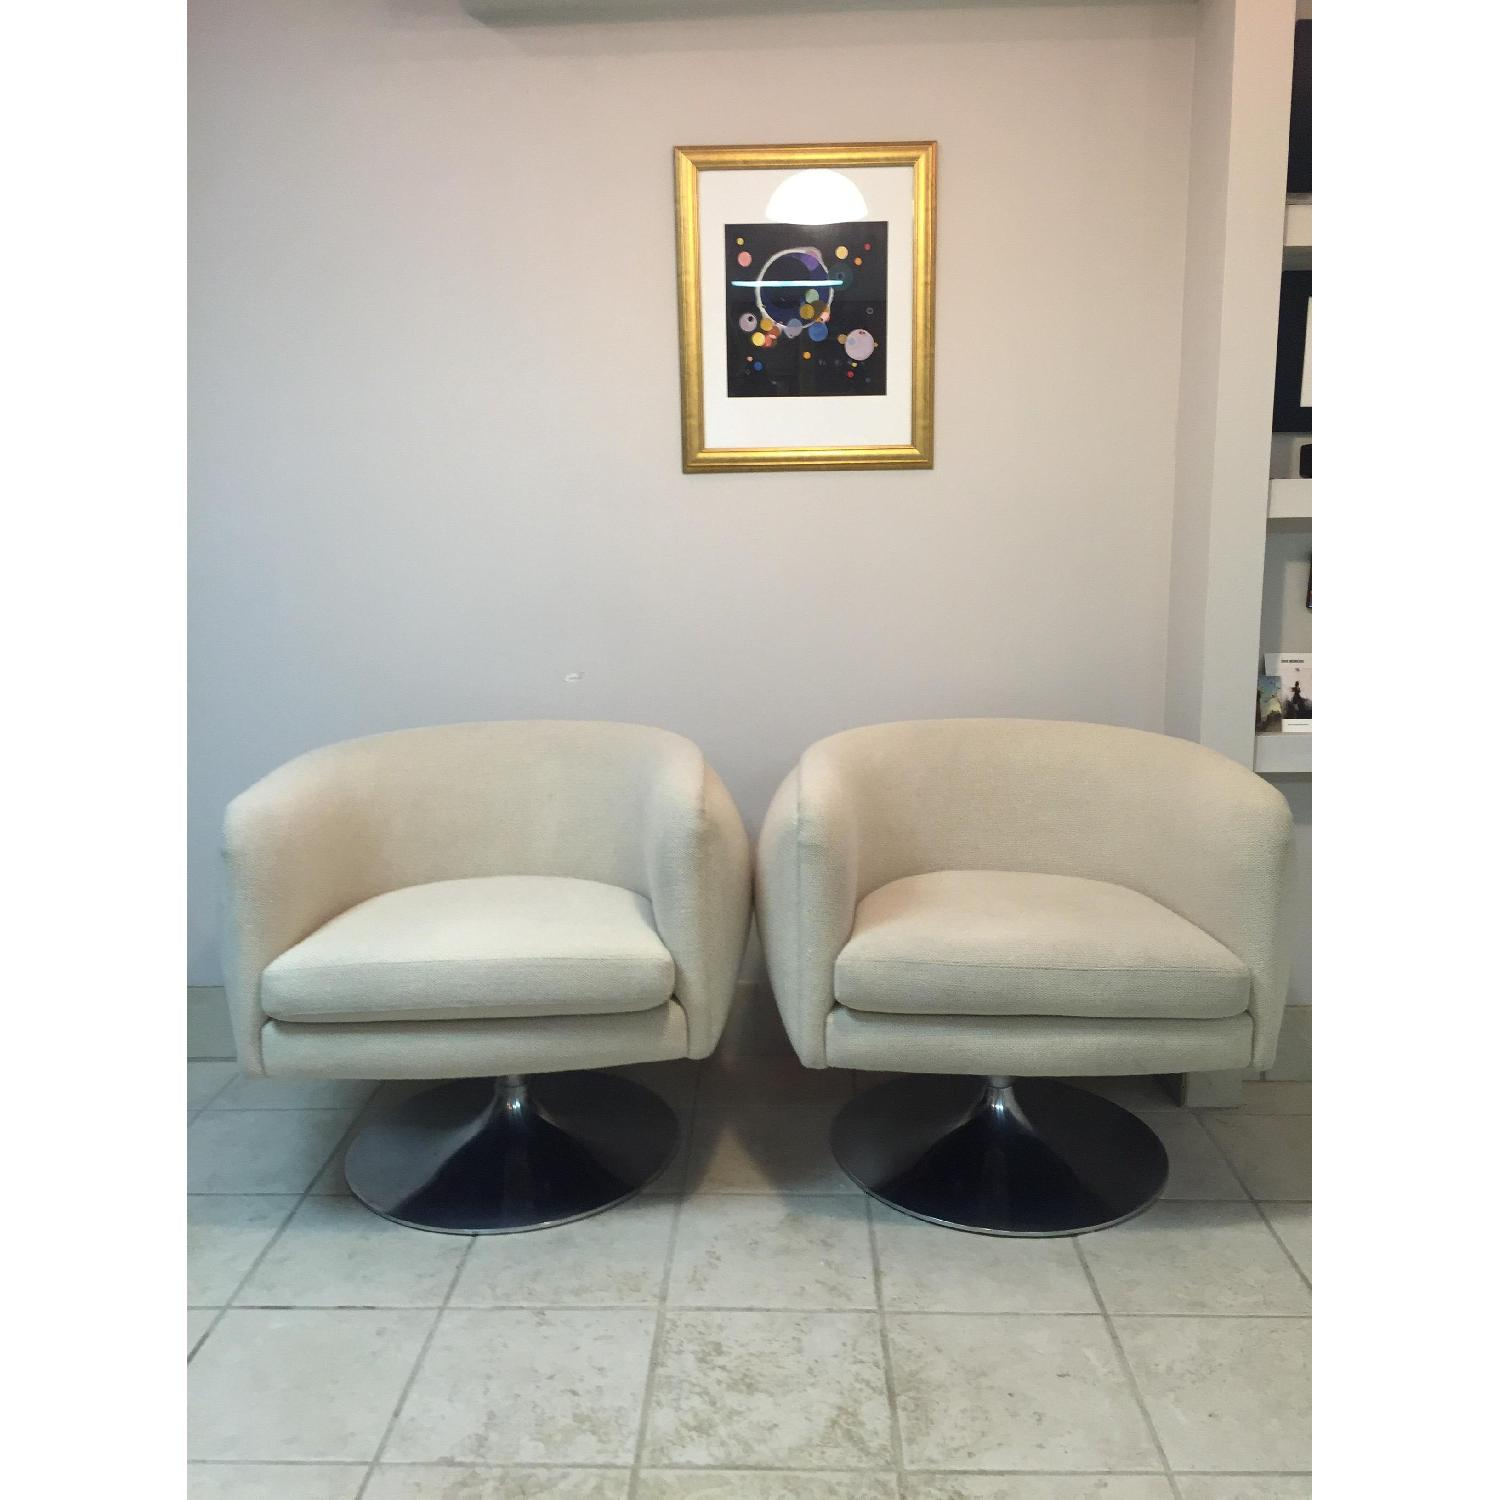 Knoll D'Urso Swivel Lounge Chair - 2 Available - image-9